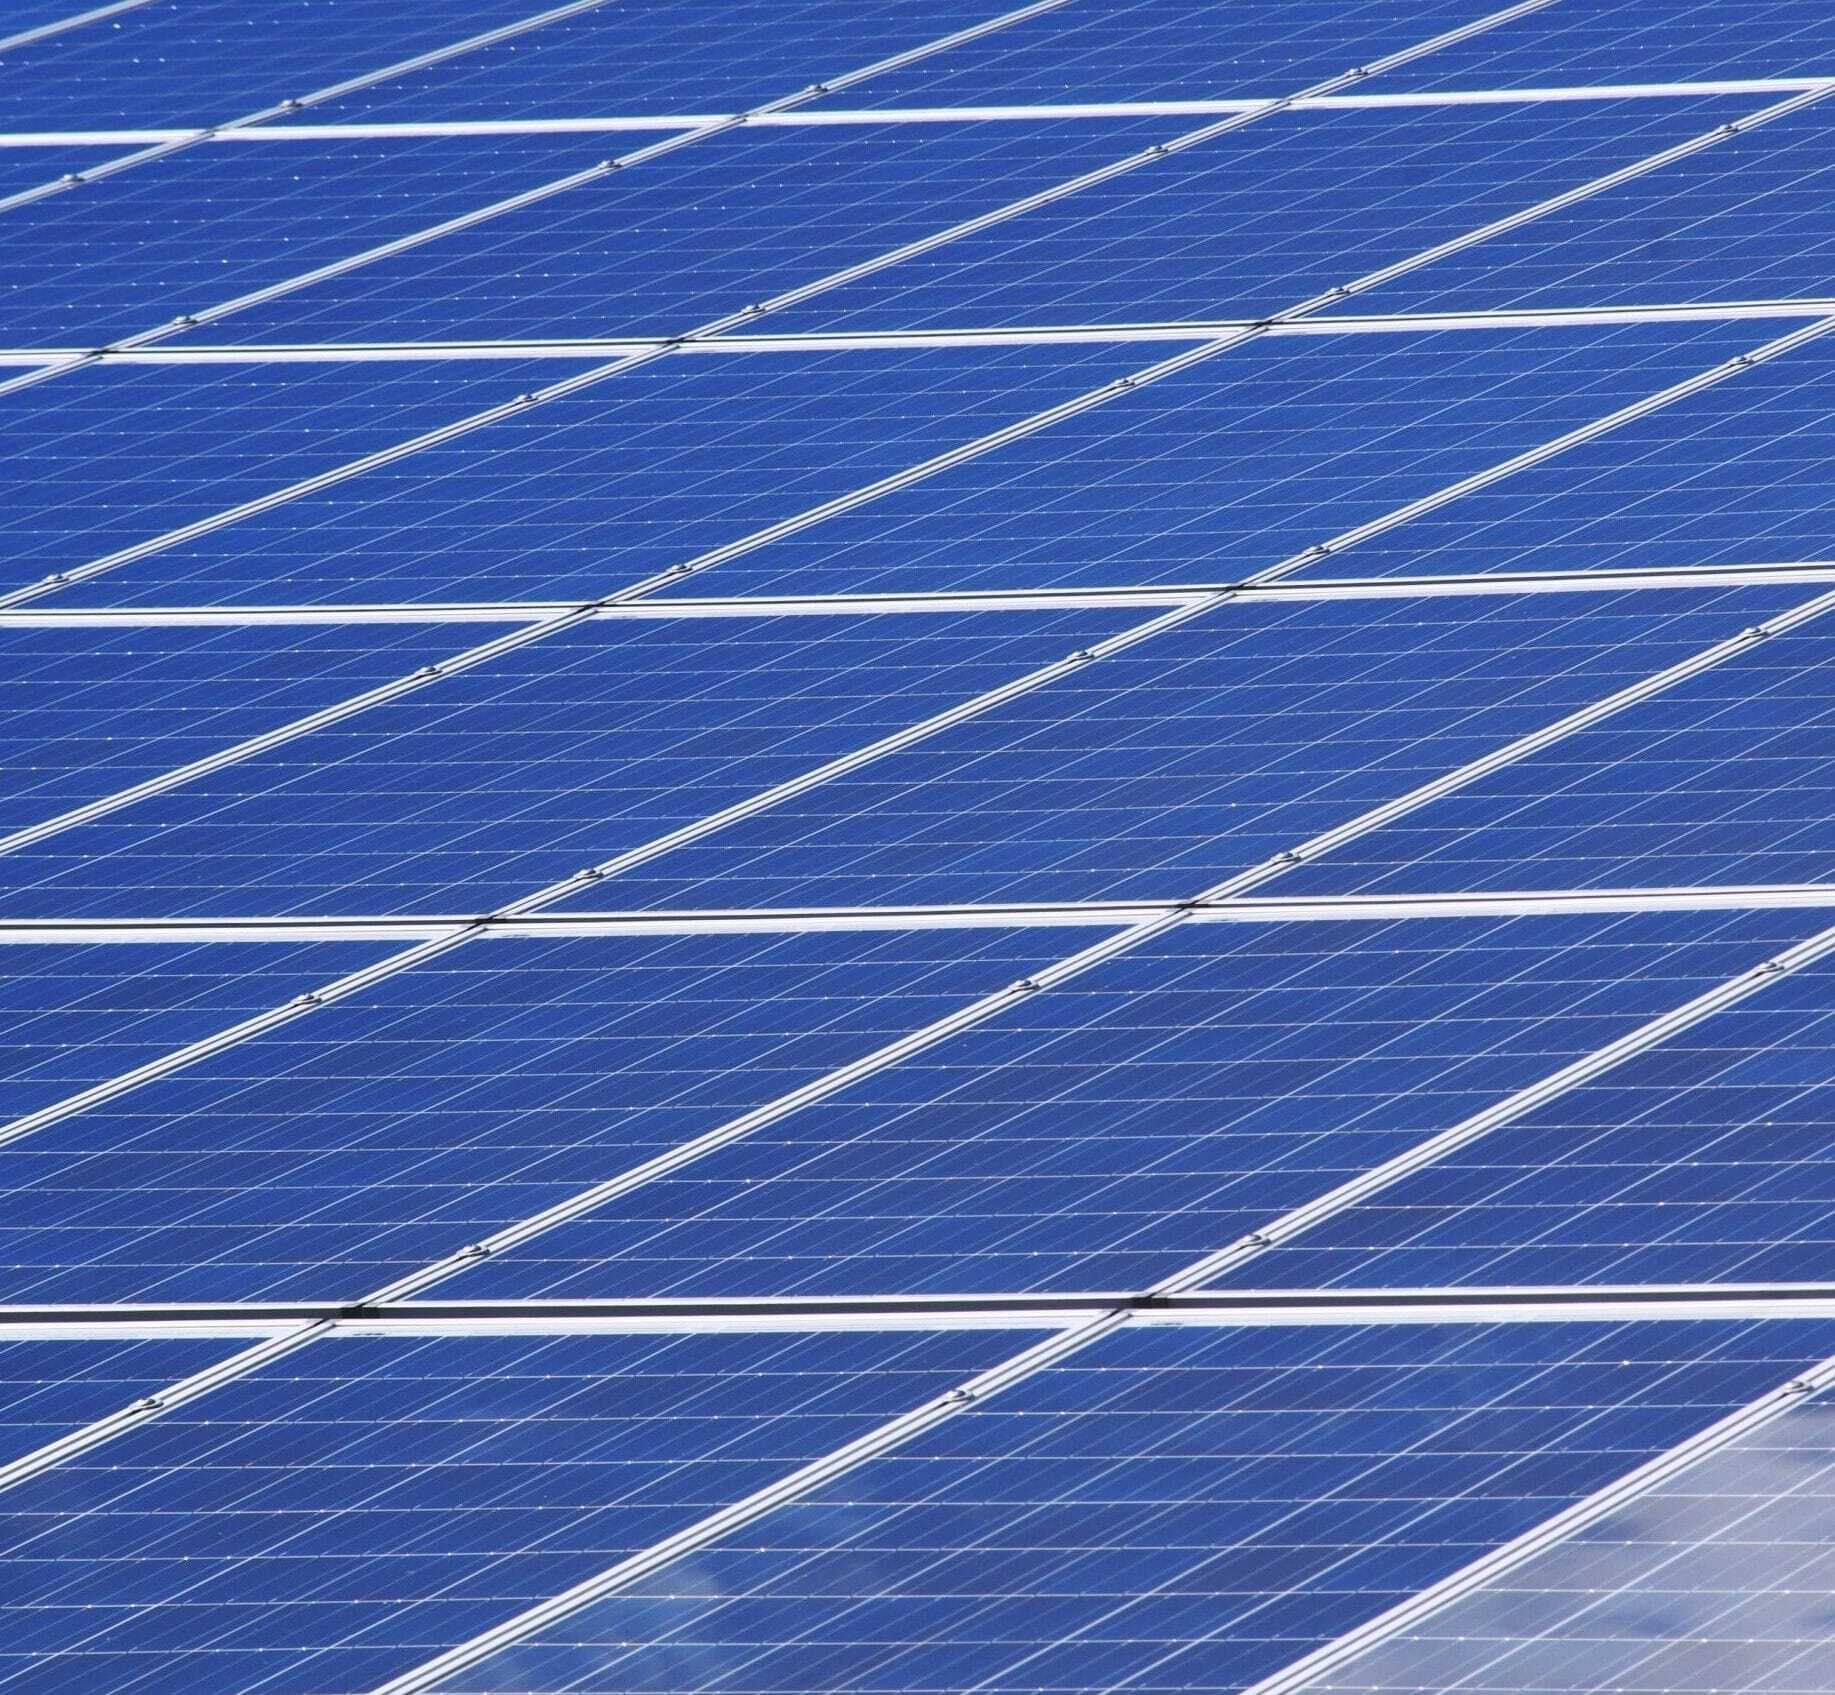 Solar Farm Inspections with Thermal Cameras by Drone Site Surveys